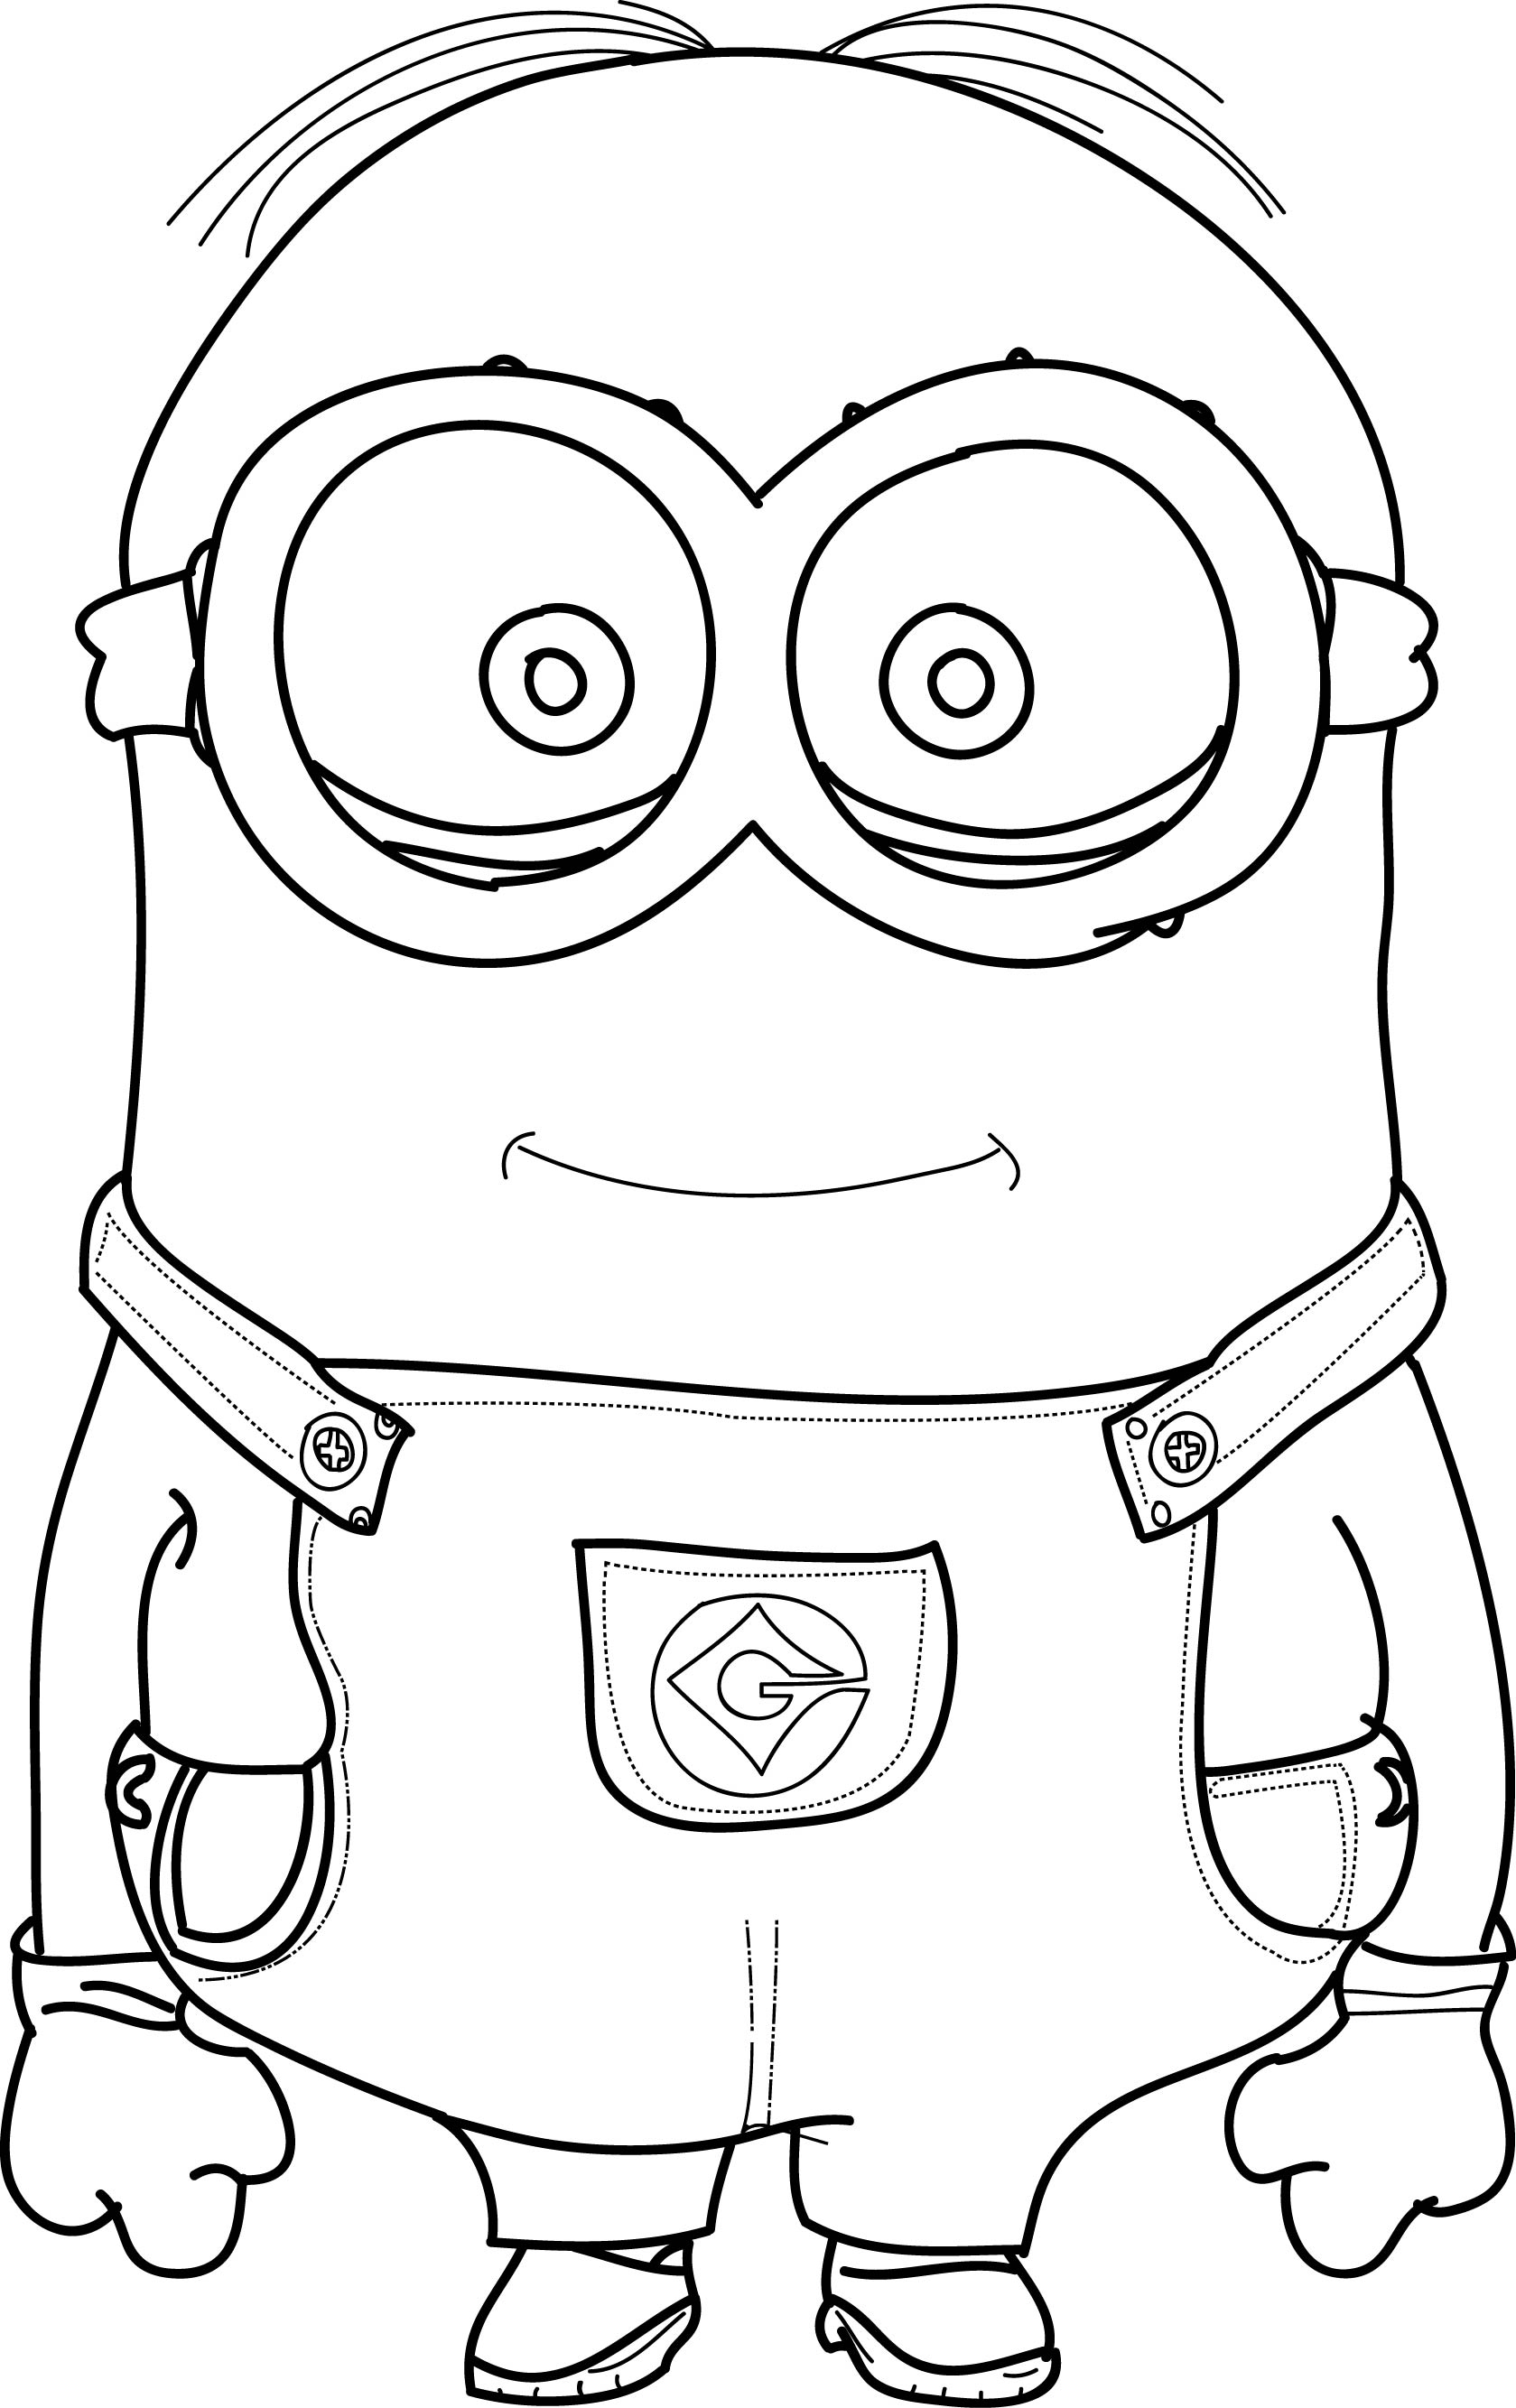 minion kevin coloring pages free minion coloring pages at getdrawings free download minion pages kevin coloring